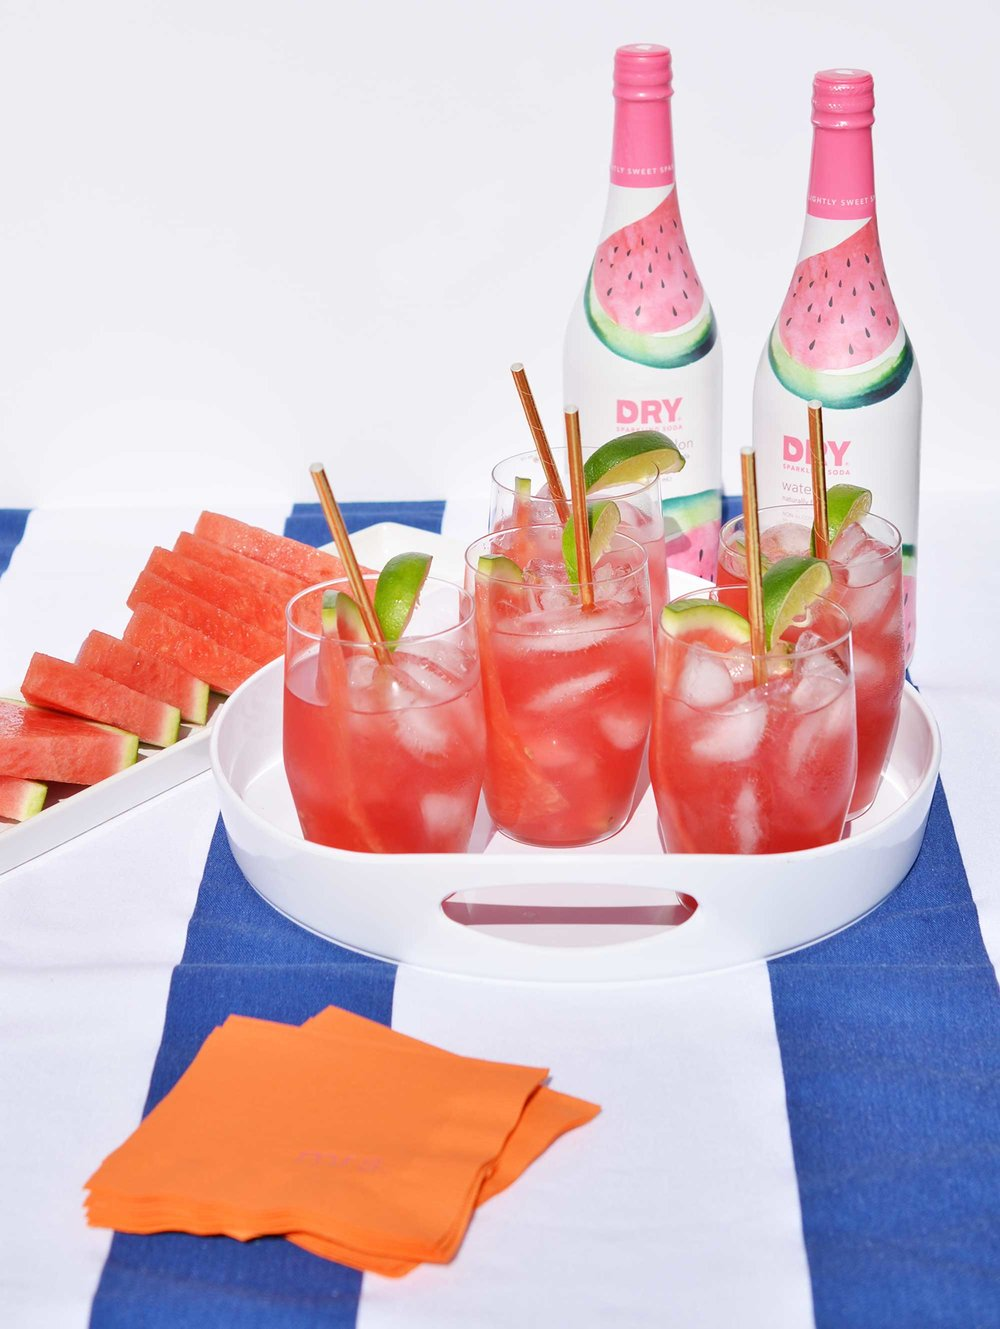 Ali Hedin | Watermelon Cocktail with DRY Sparkling Watermelon